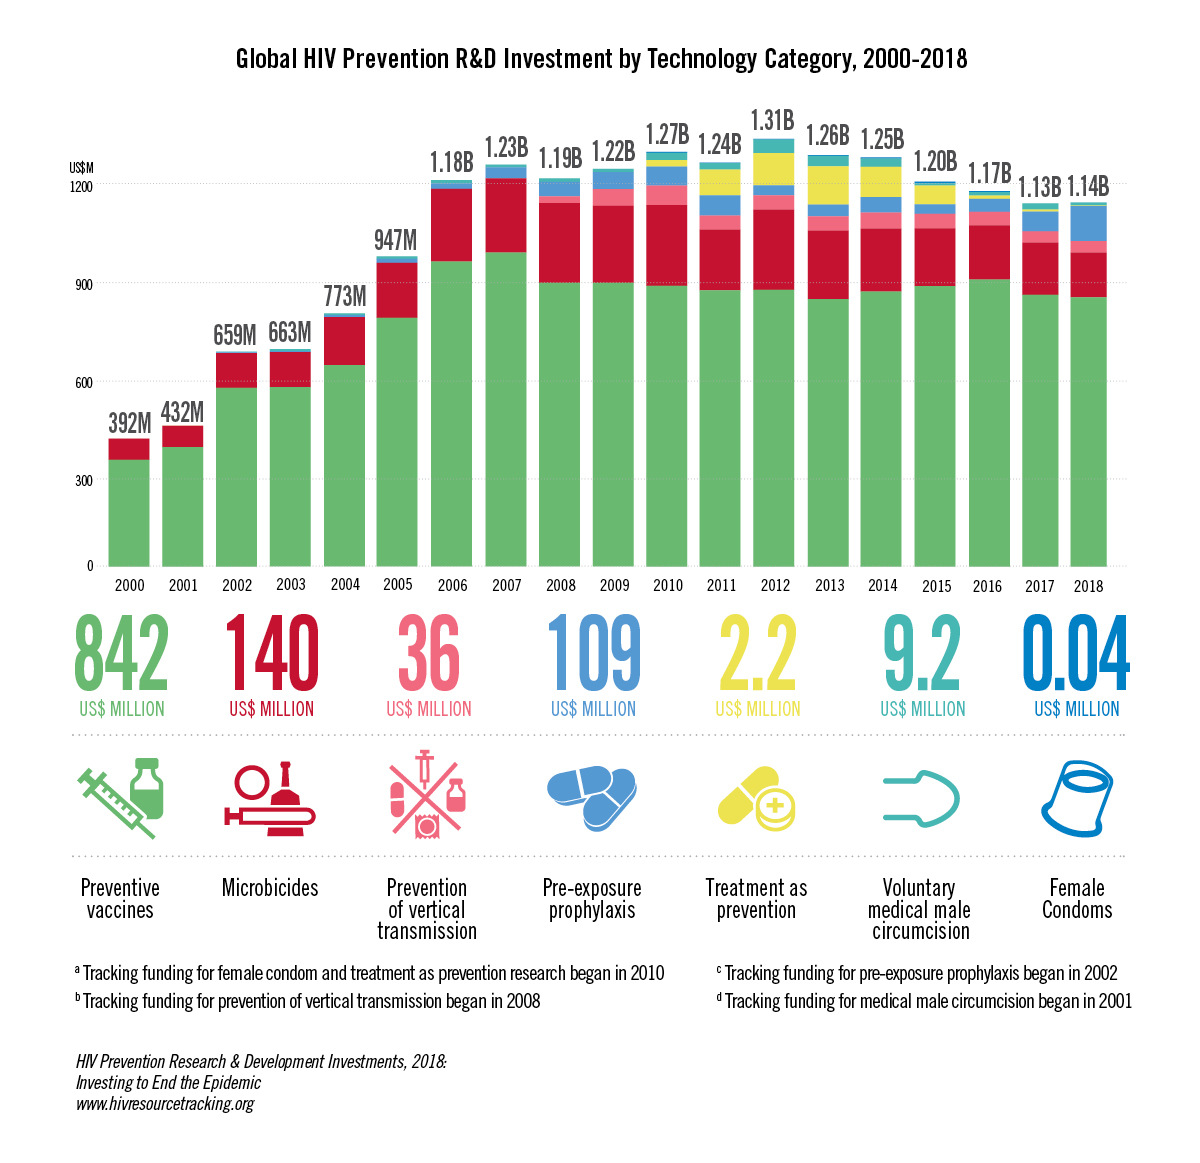 global HIV prevention R&D investment by Technology Category, 2000-2018